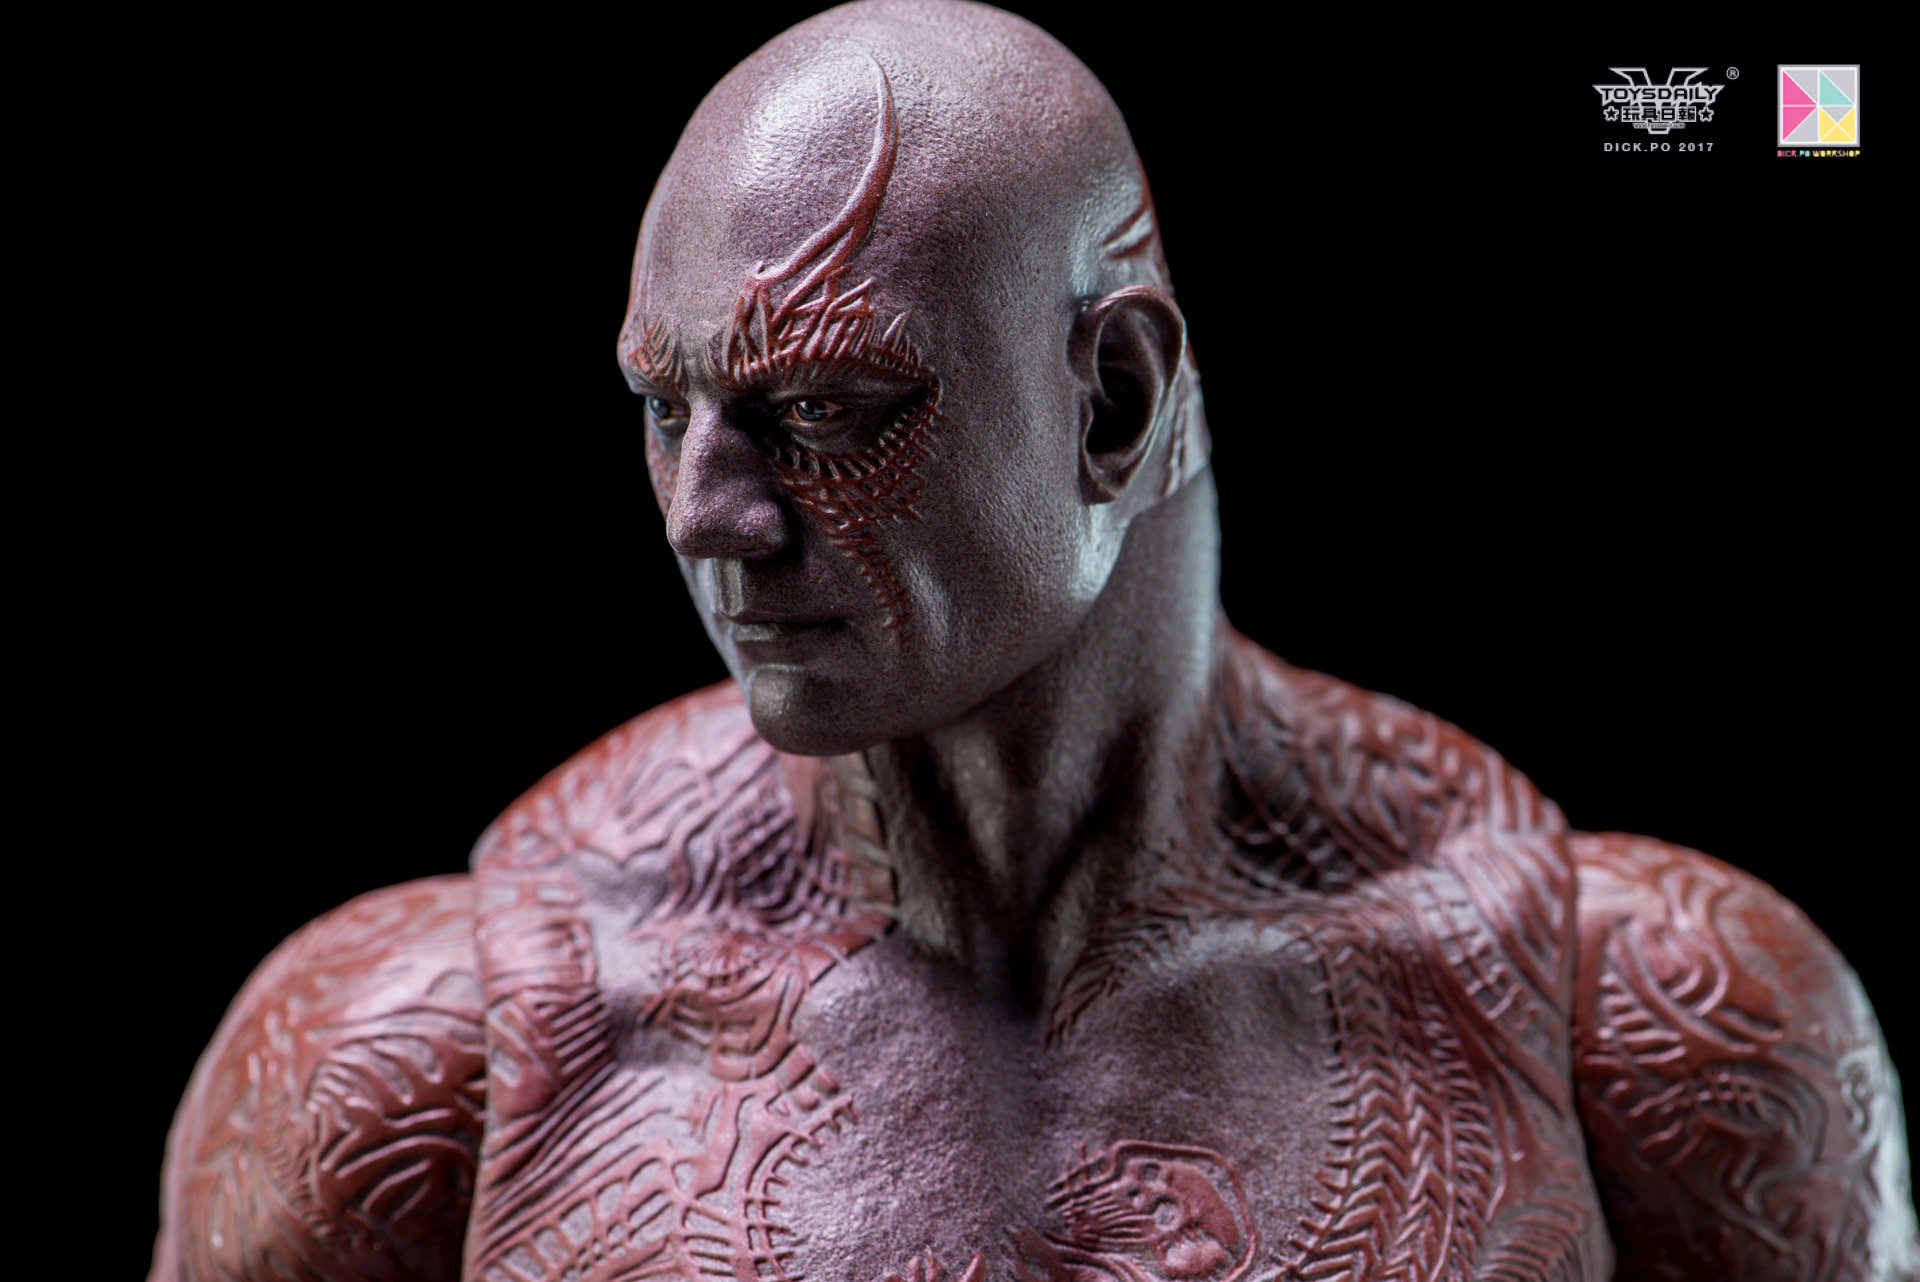 toysdaily_dick.po_Hottoys_DARX-21.jpg